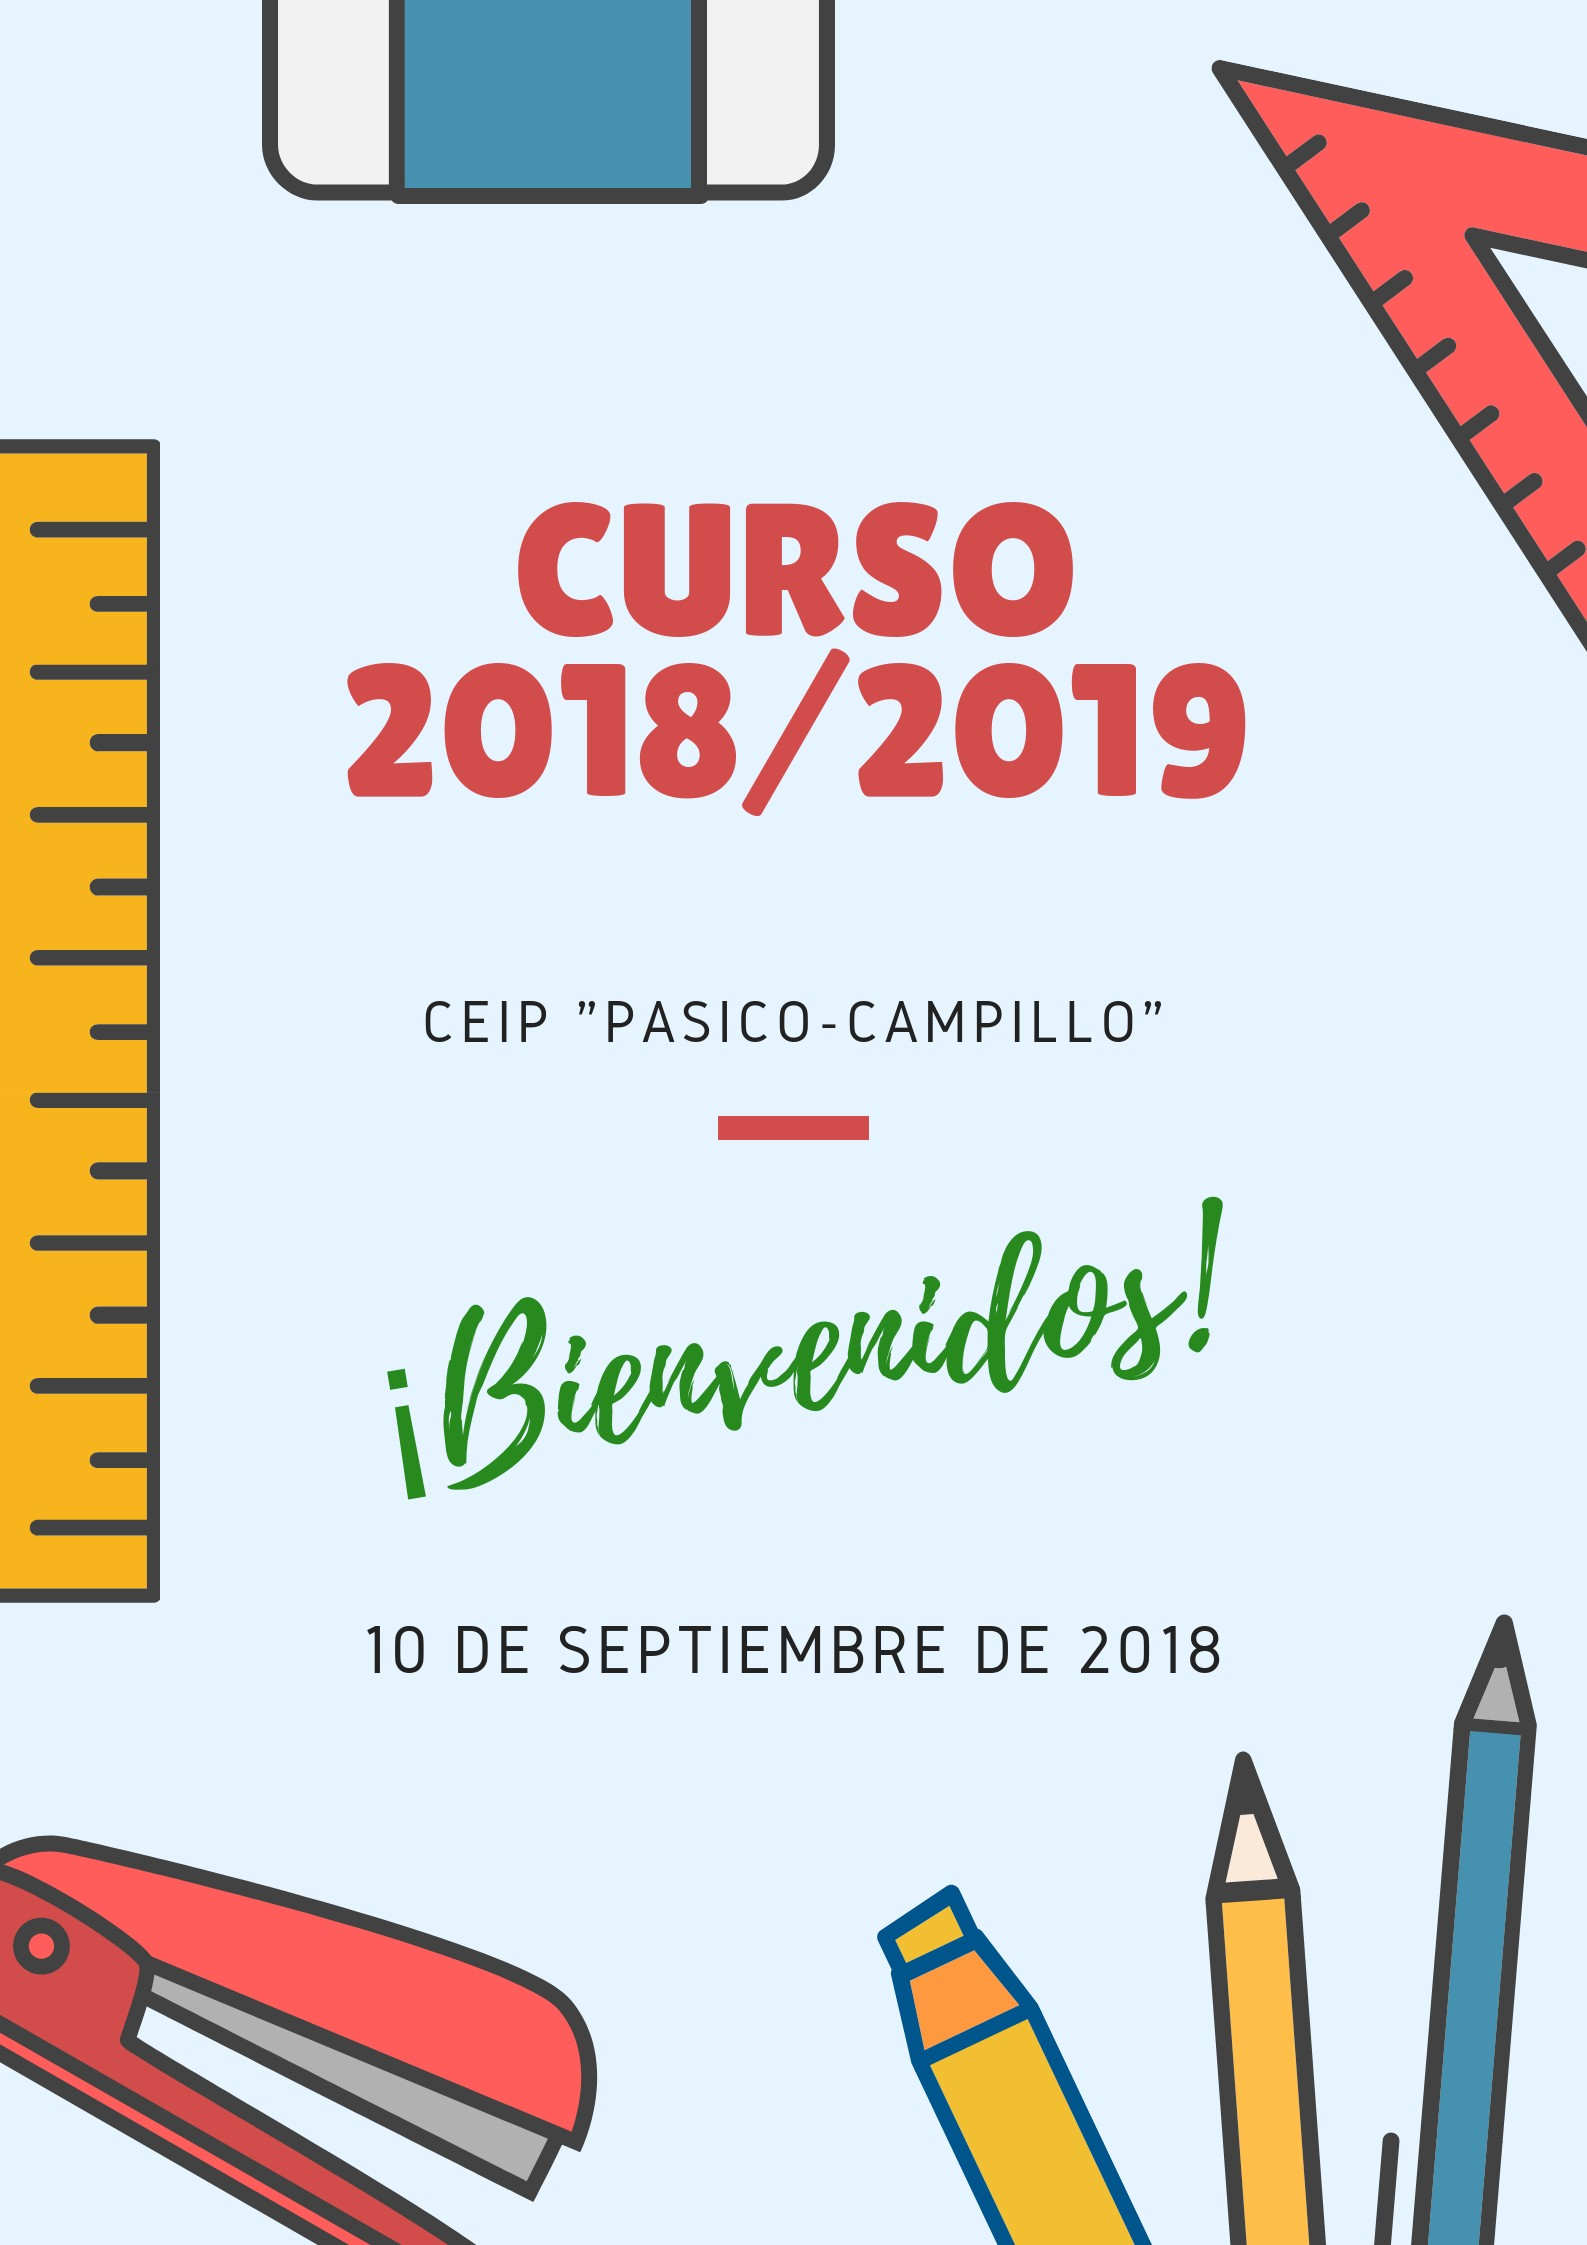 Calendario Escolar 2019 Lorca Más Actual C E I P Pasico Campillo Of Calendario Escolar 2019 Lorca Actual Recepcion De Susana Diaz Al Centro